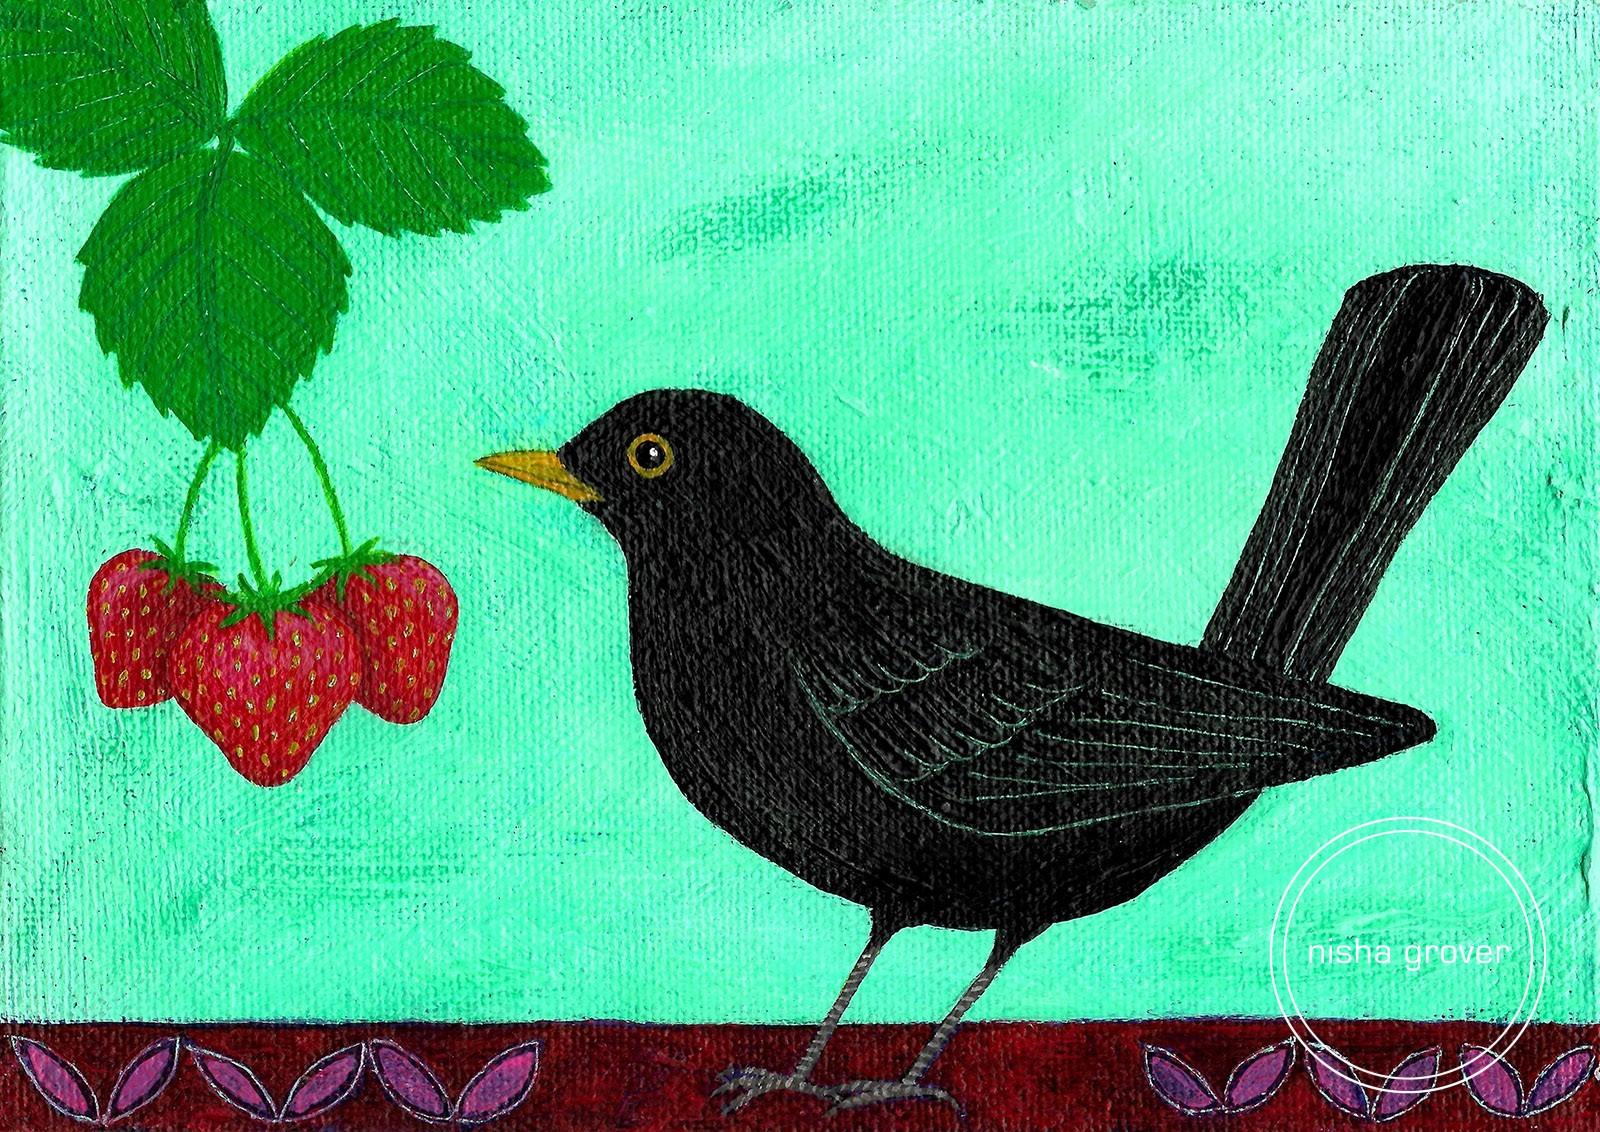 Blackbird with strawberries